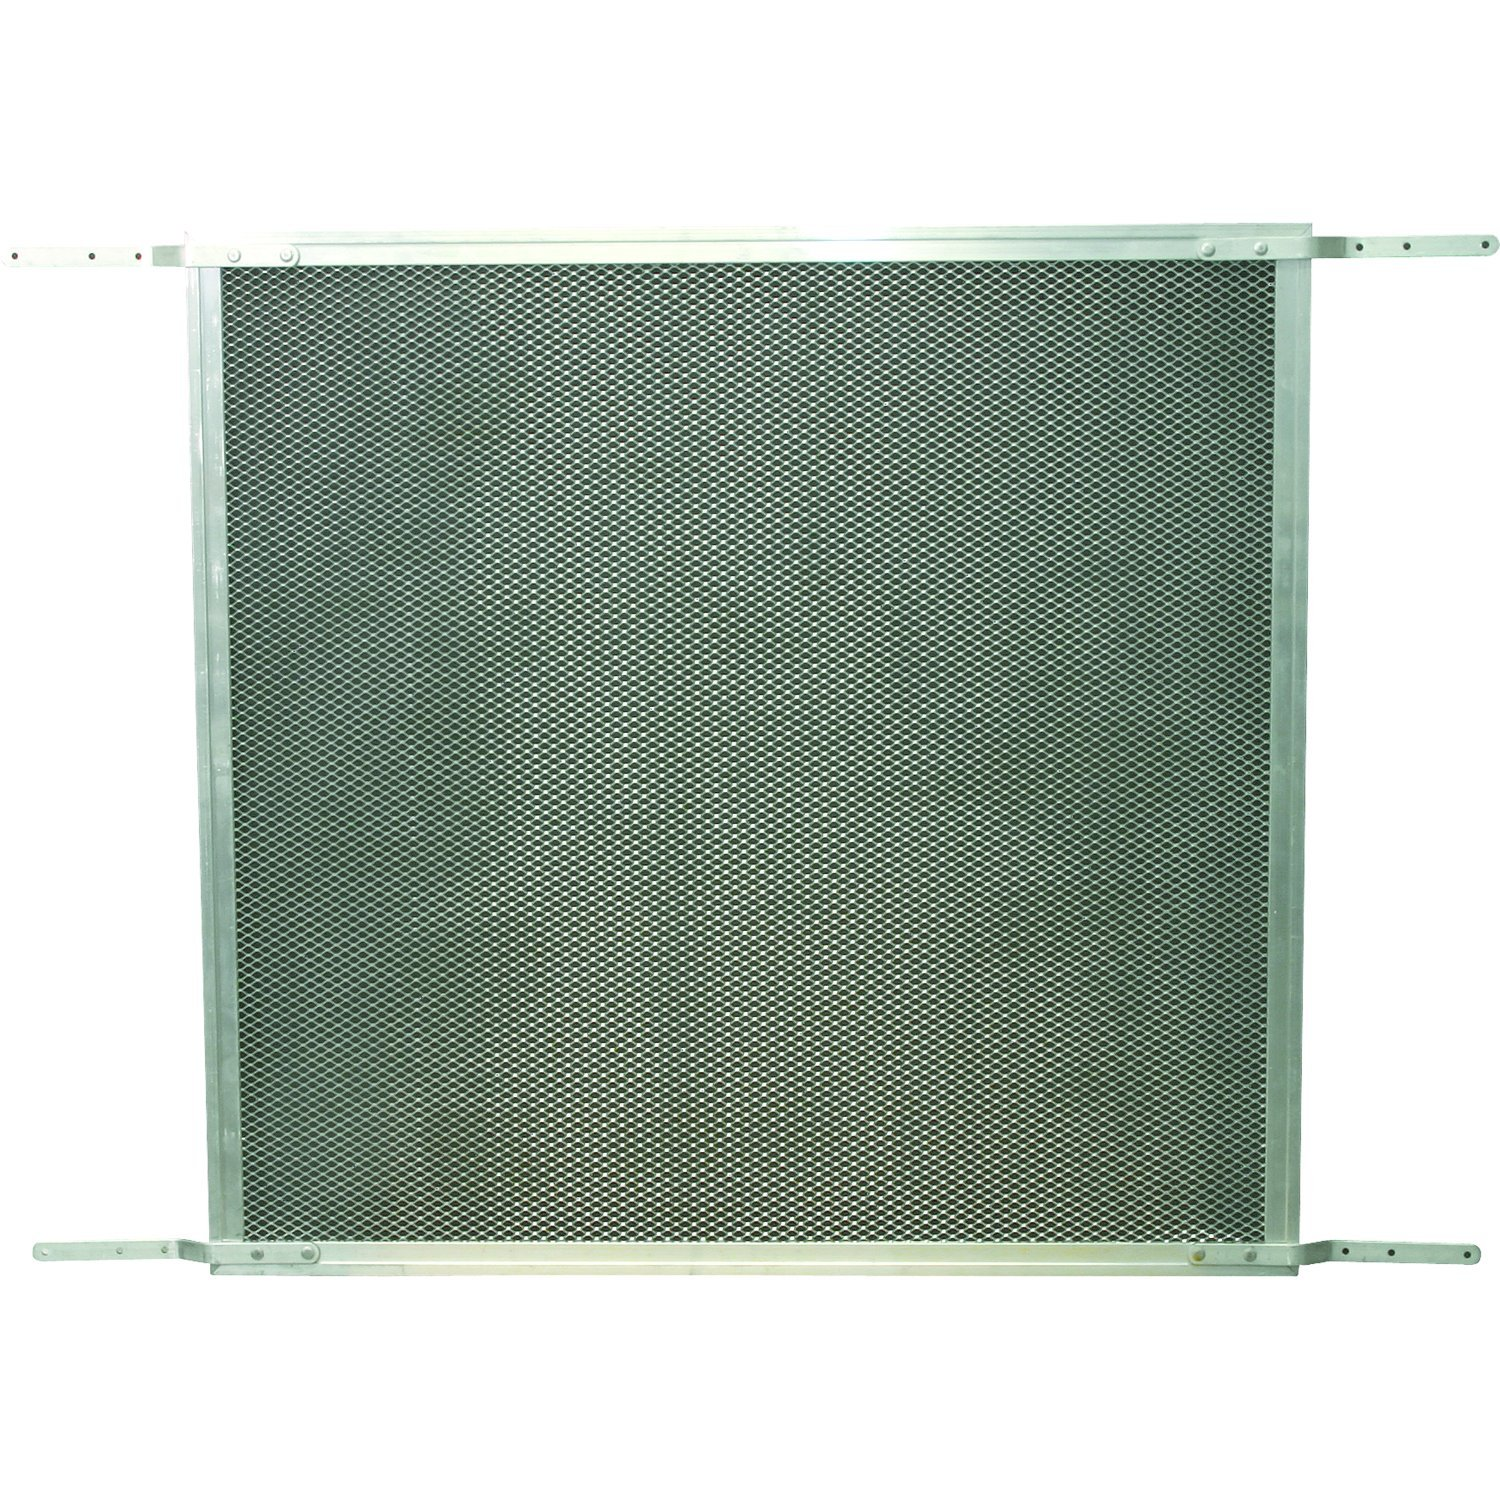 Prime-Line Products PL 15940 Patio Sliding Screen Door Grille with Aluminum Construction, 48'', Satin Finish